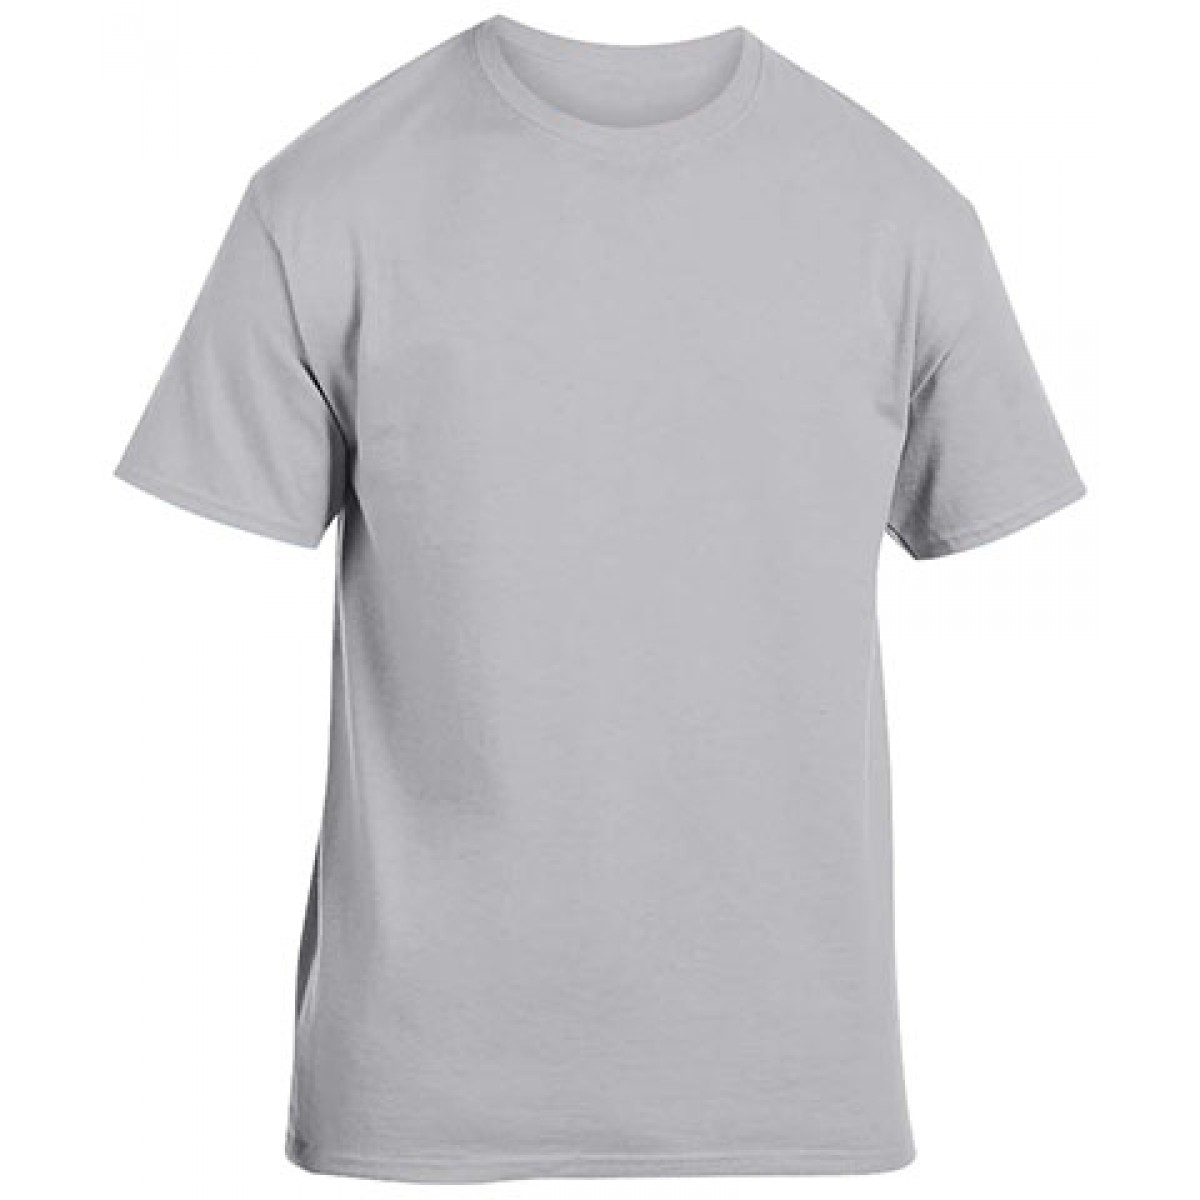 Cotton Short Sleeve T-Shirt-Gray-L